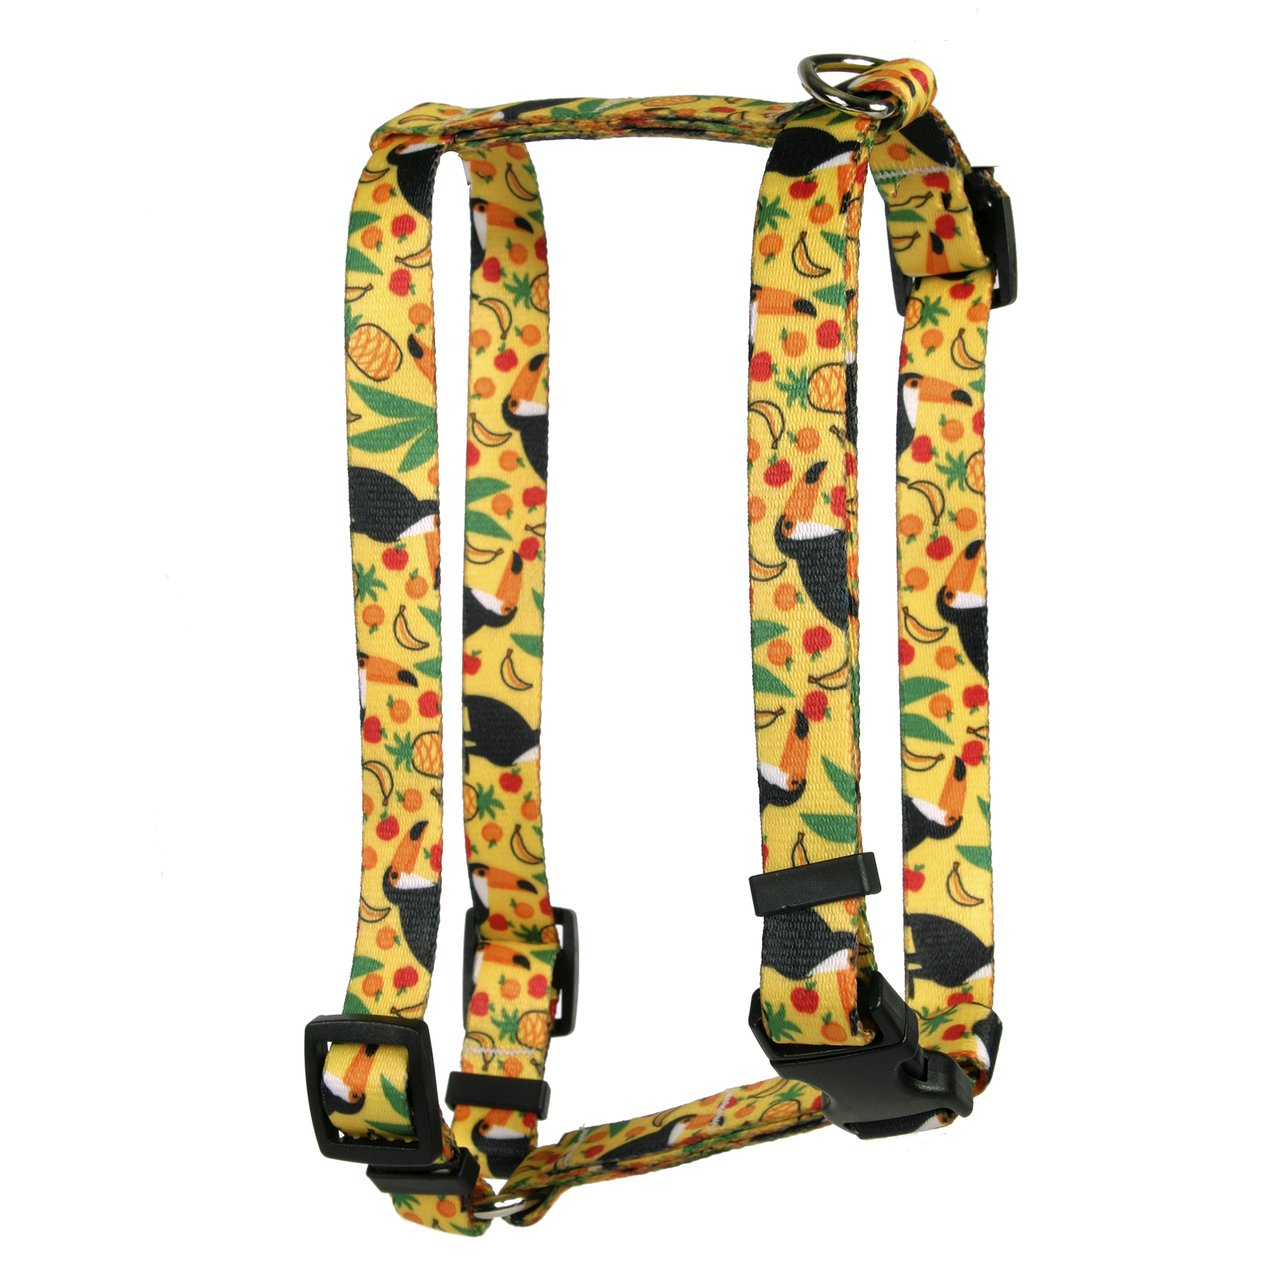 Yellow Dog Design Fruity Tucan Roman Style H Dog Harness, X-Large/1'' Wide